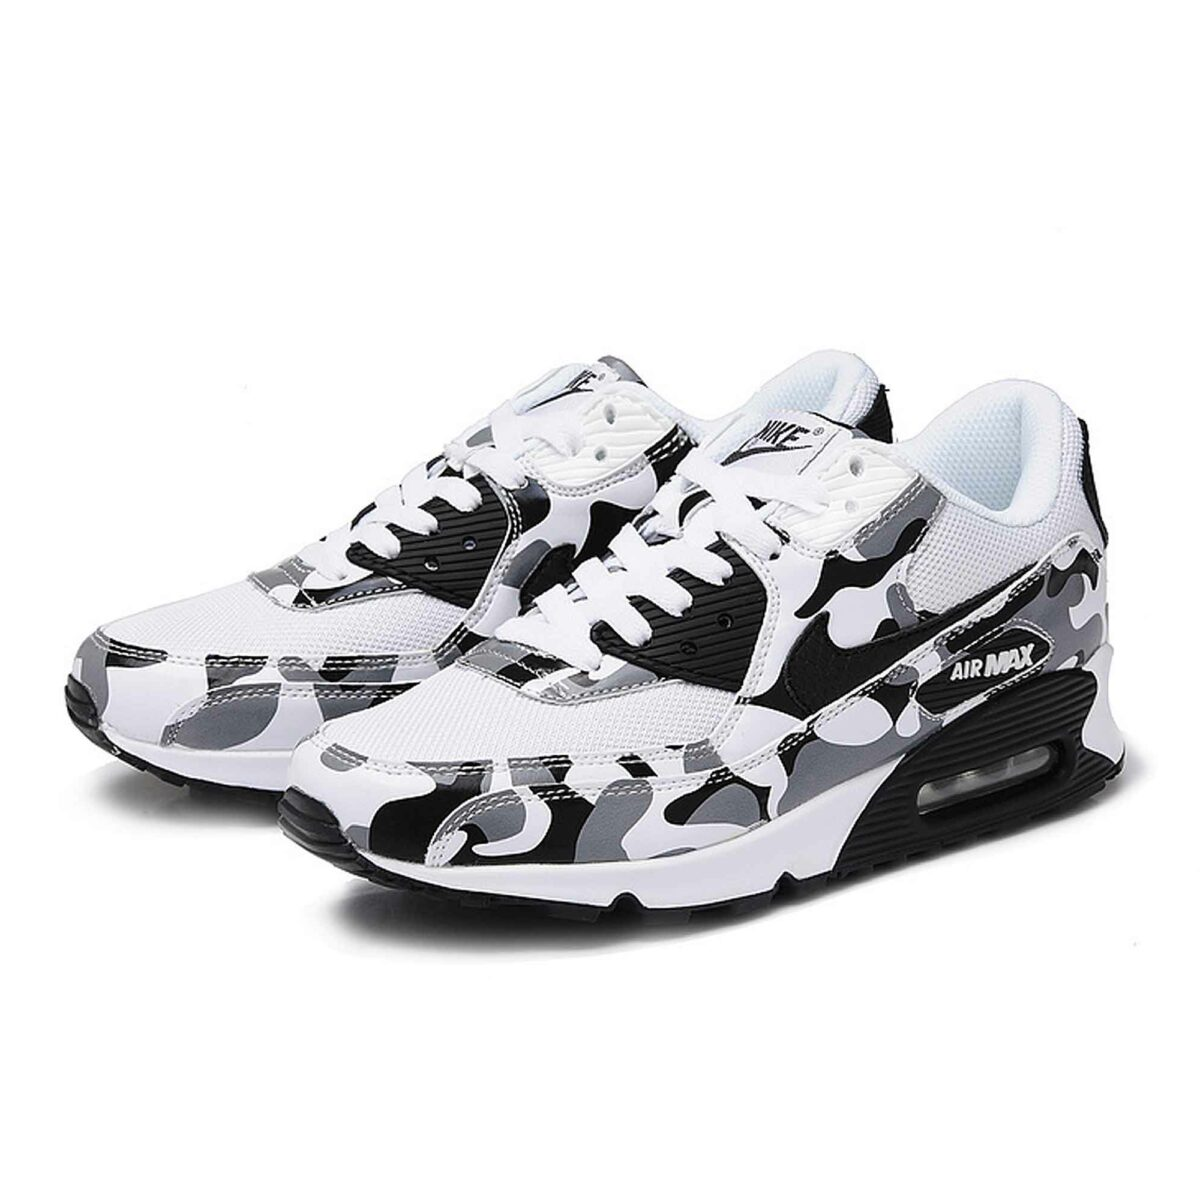 nike air max 90 white gray camouflage купить